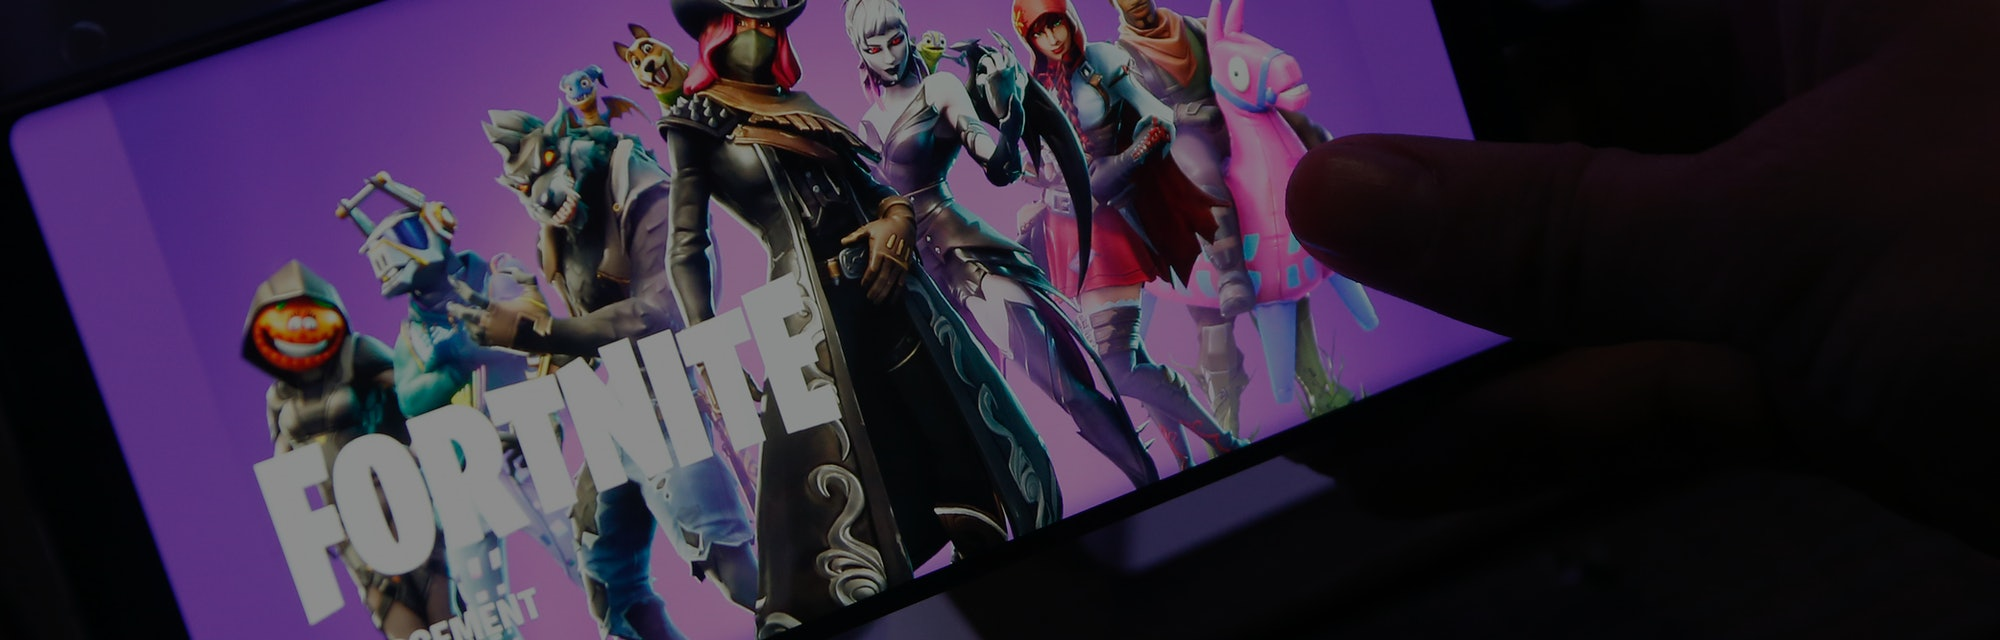 Fortnite has been blocked by Apple on its platforms.